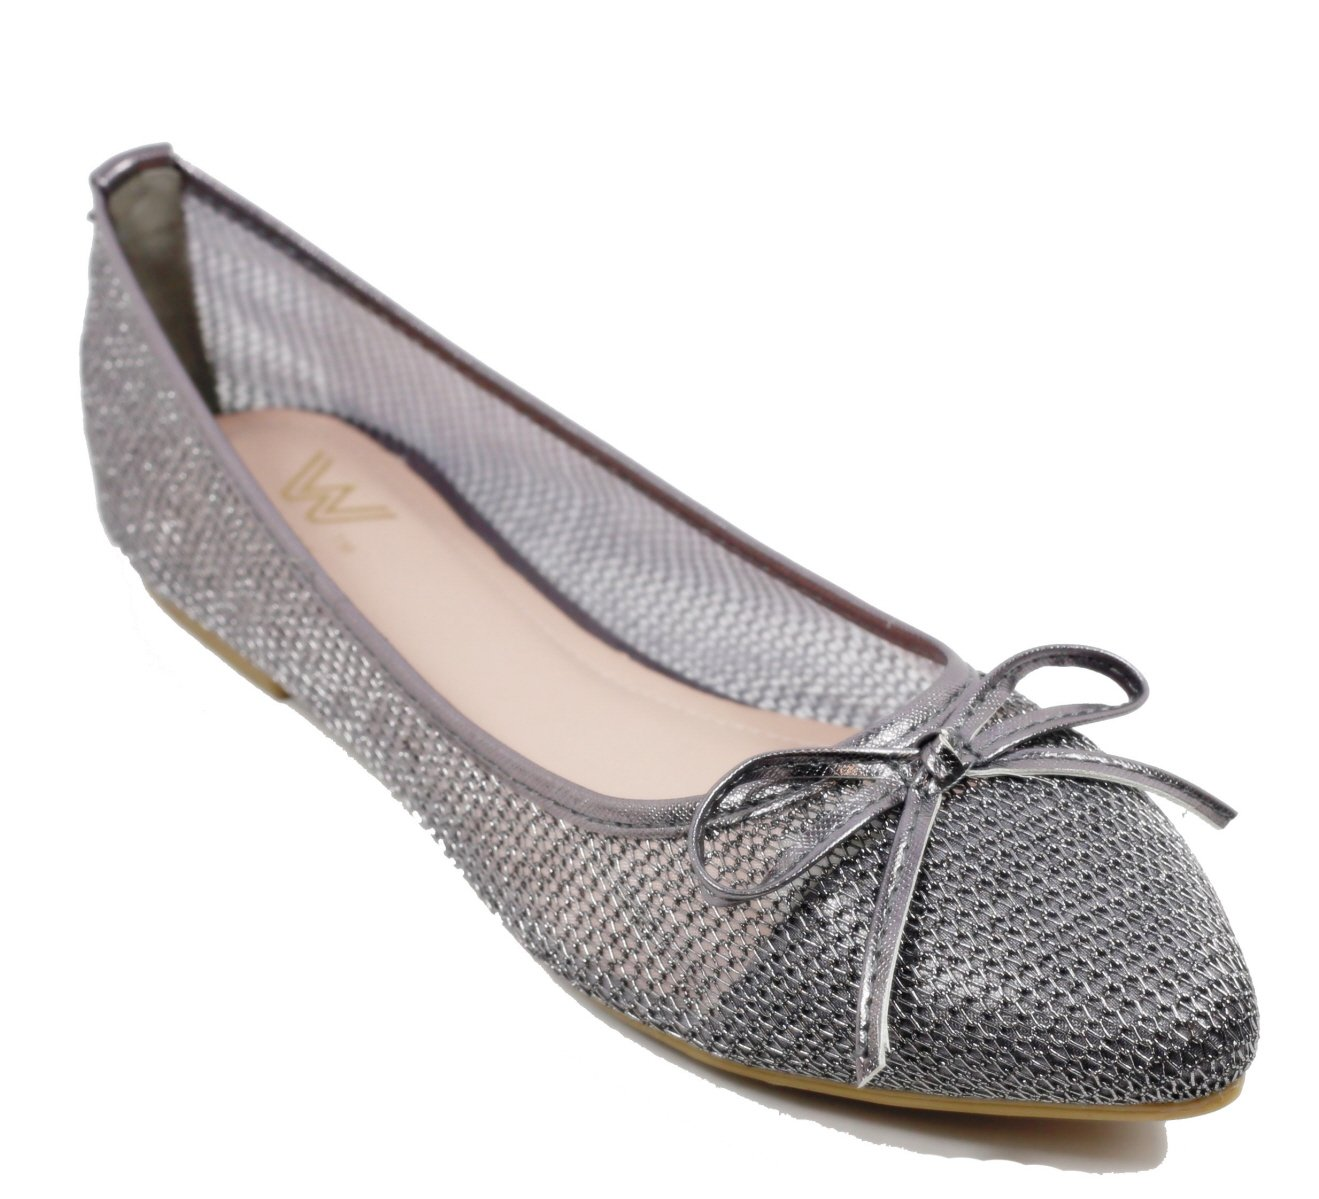 Walstar wedding shoes for bride Flat Shoes Mesh Flat Shoes B073WHPN5F 8 B(M) US|Pewter